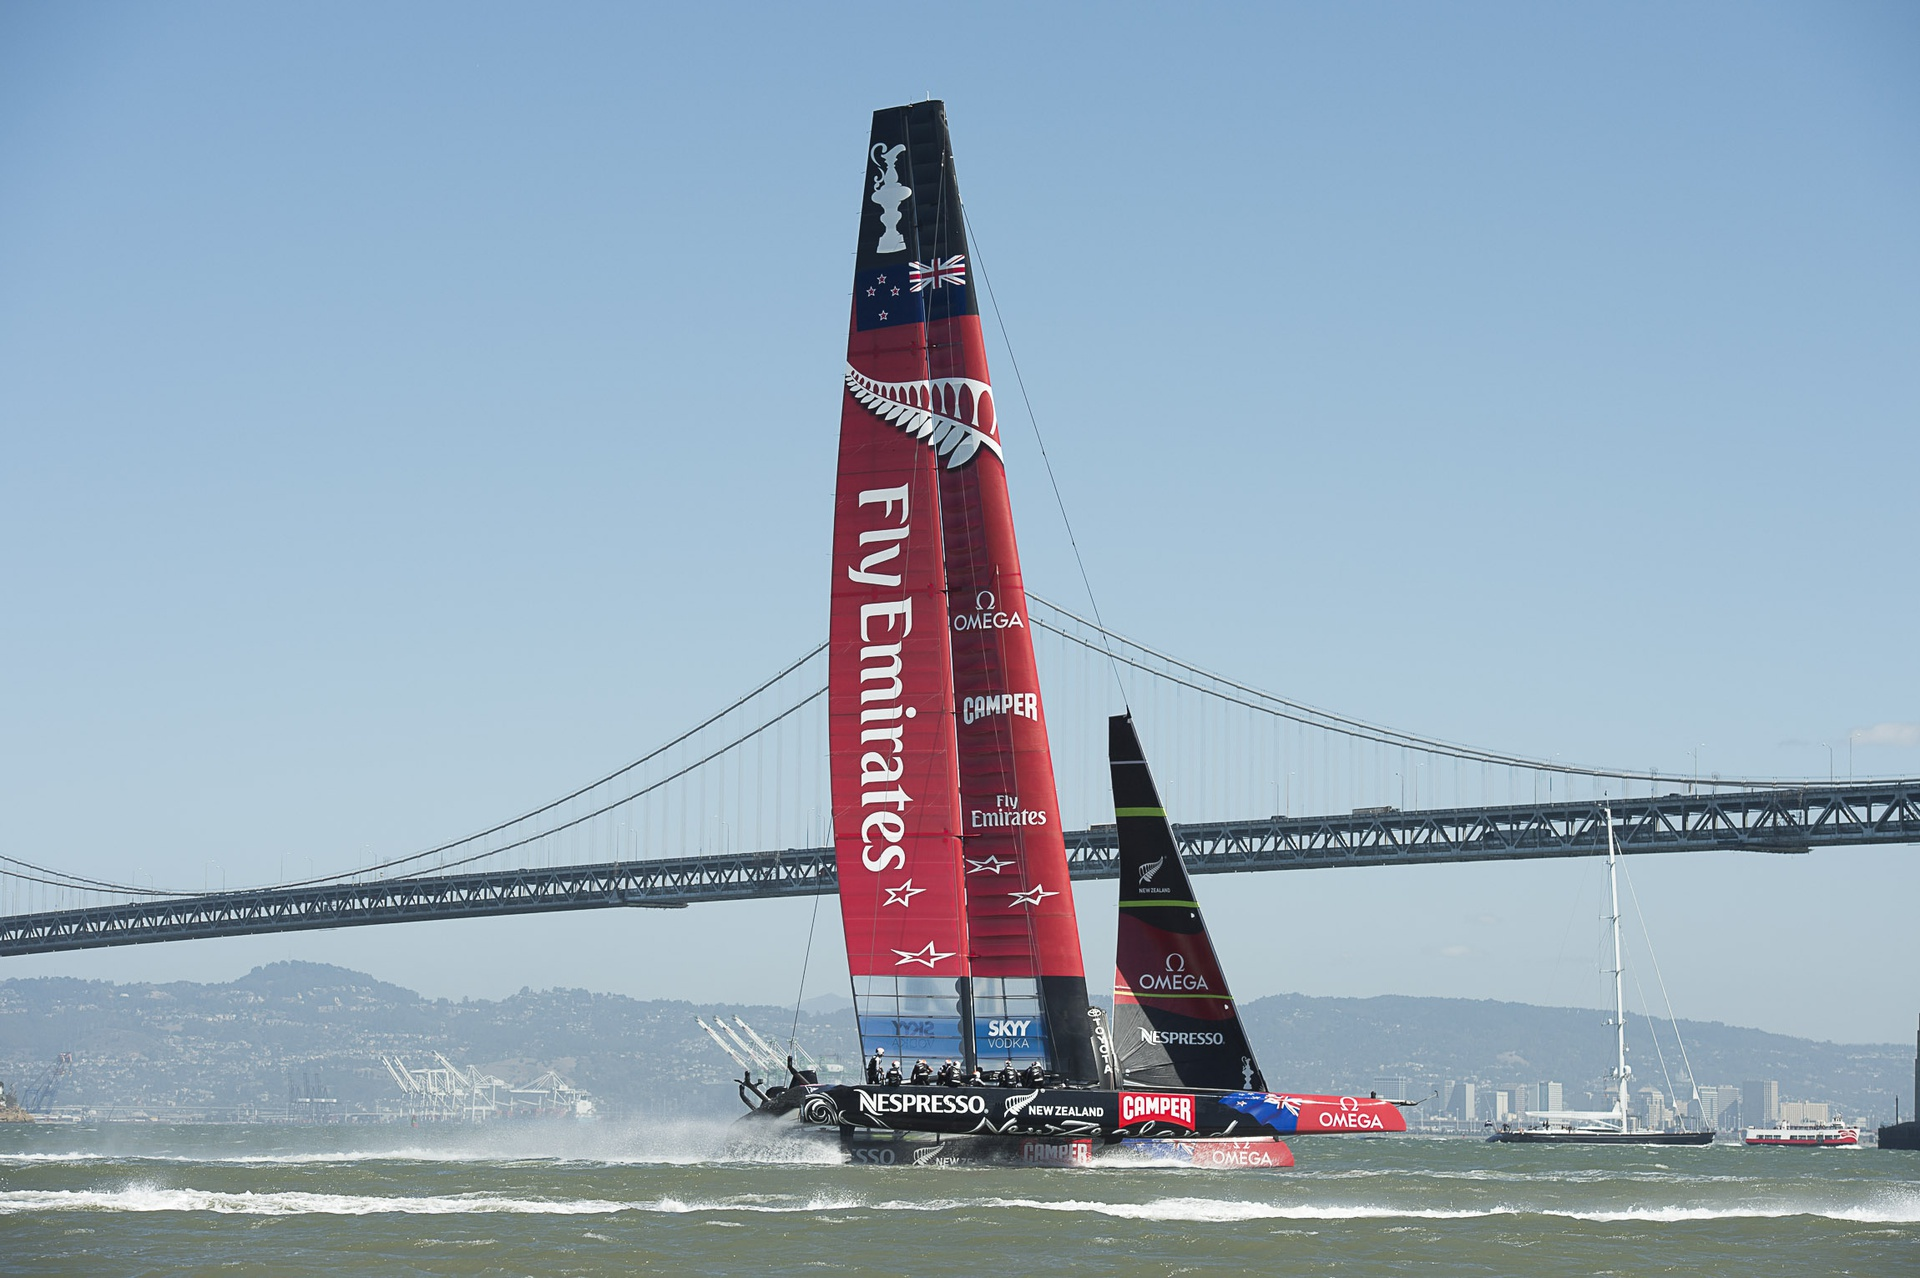 Emirates announces its renewed commitment to Emirates Team New Zealand